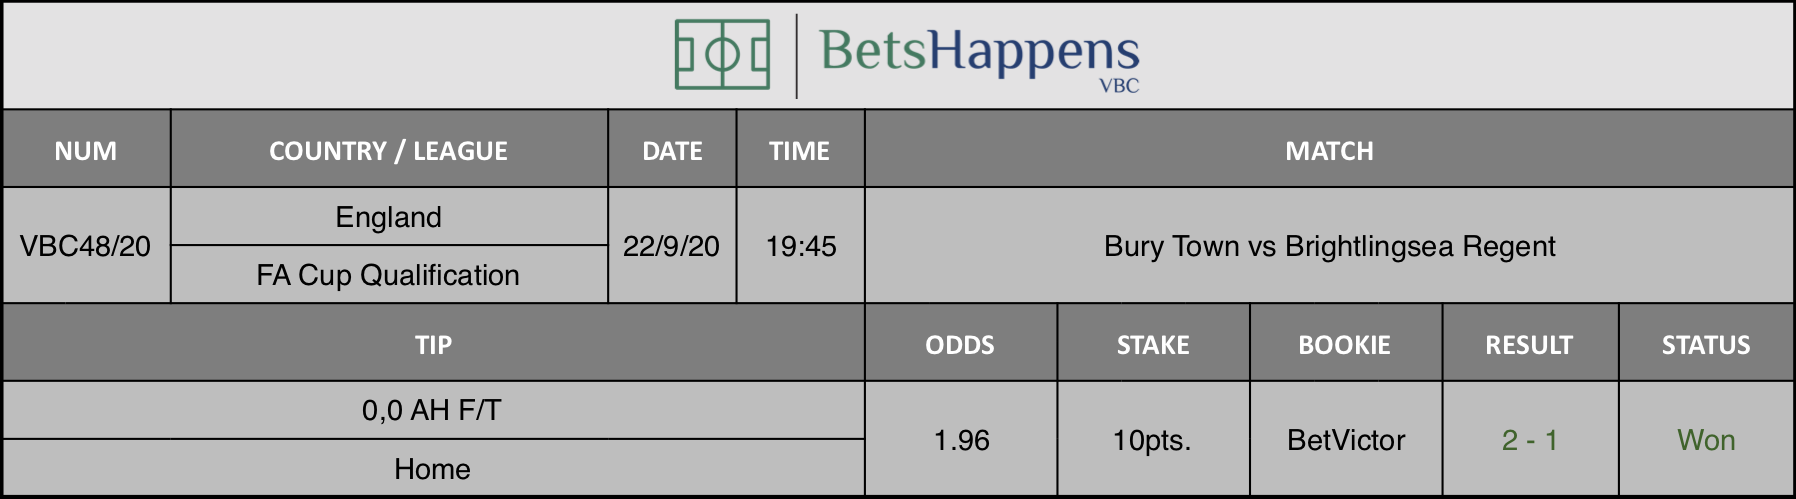 Results of our tip for the Bury Town vs Brightlingsea Regent game where 0.0 AH F / T Home is recommended.